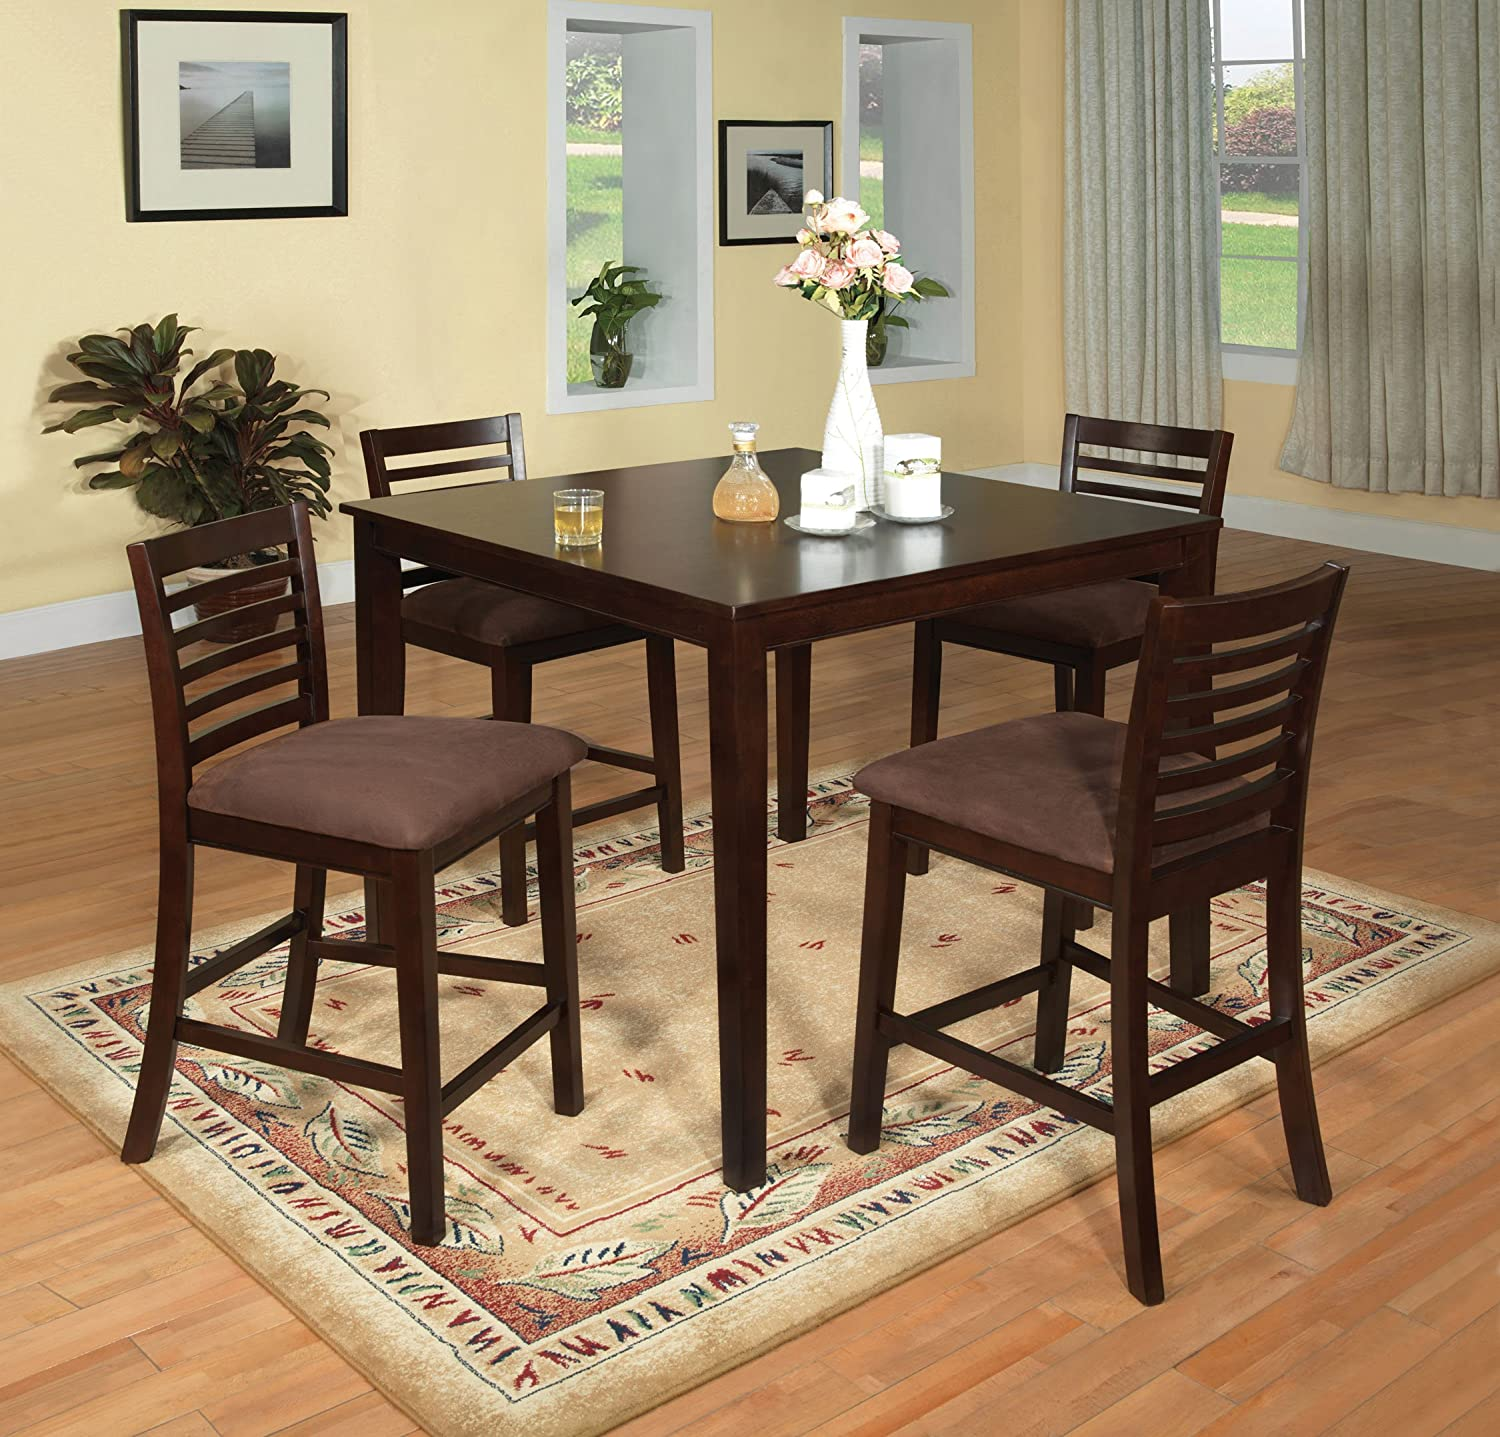 Amazon.com   Furniture Of America Ramone 5 Piece Counter Height Dining  Table Set, Espresso Finish   Table U0026 Chair Sets Part 52